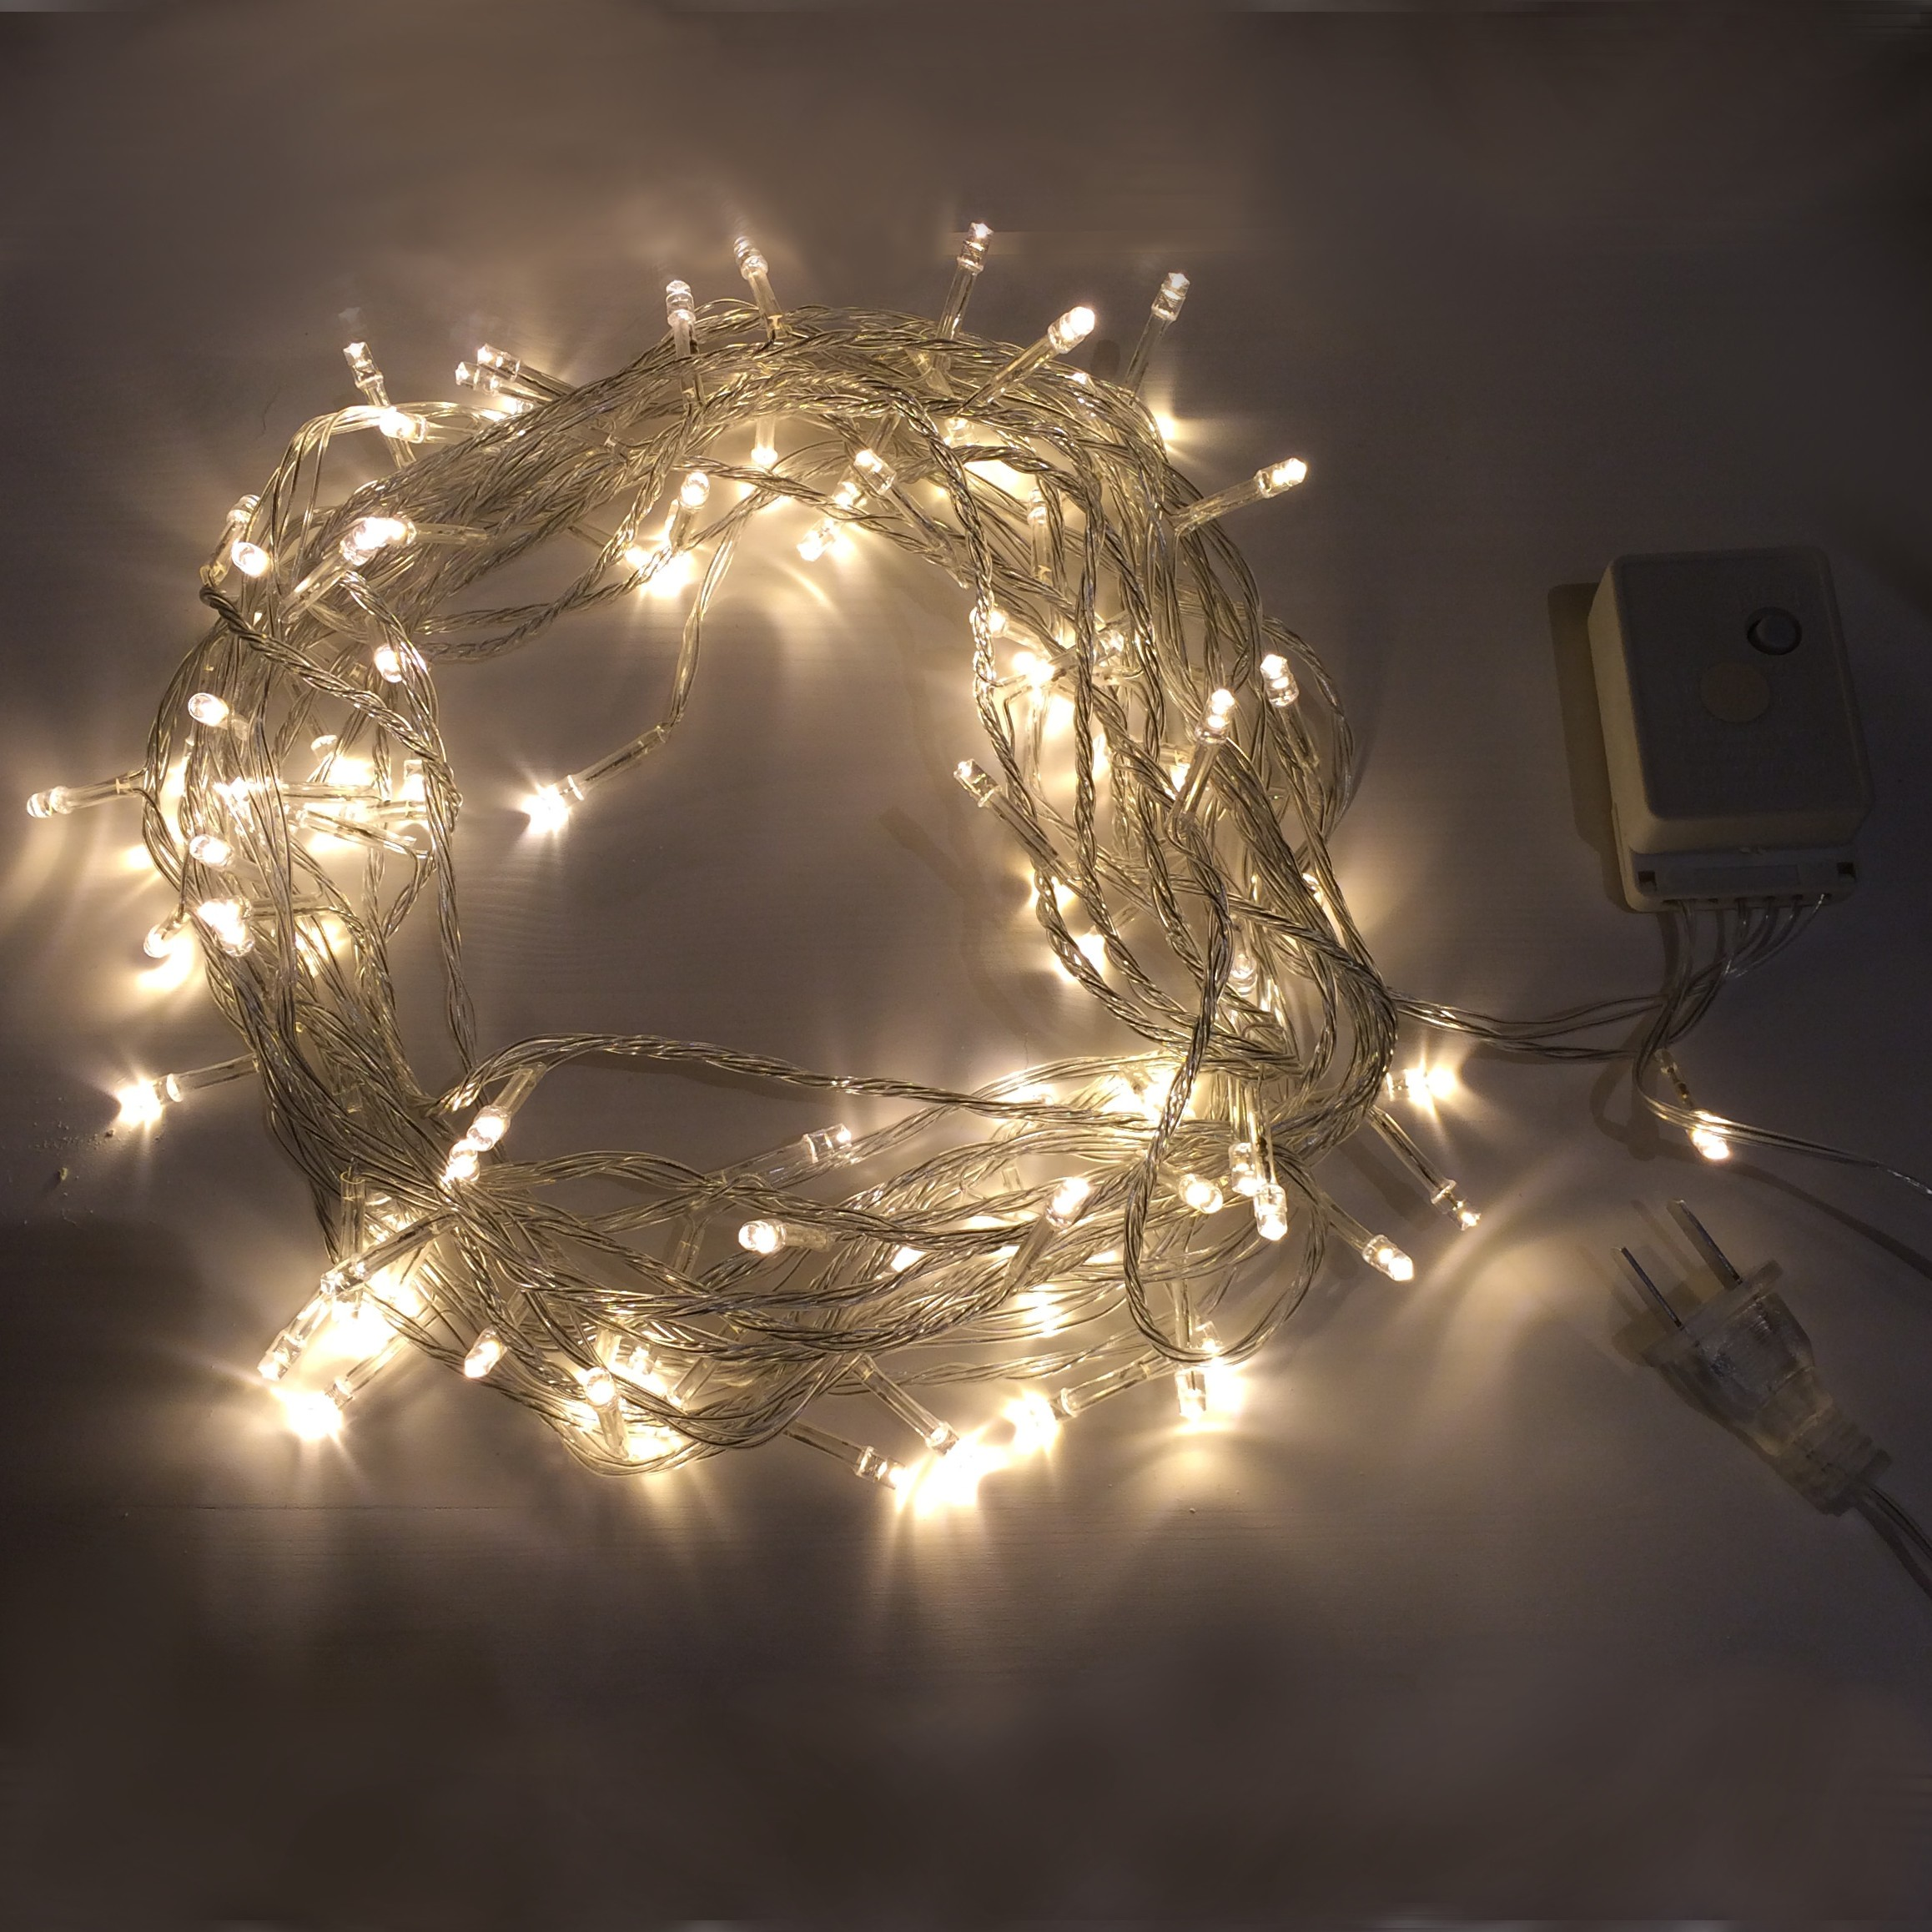 Christmas Led.Warm White 10m 8 Mode Led String Lights Fairy Lights Christmas Lights Tinkersphere